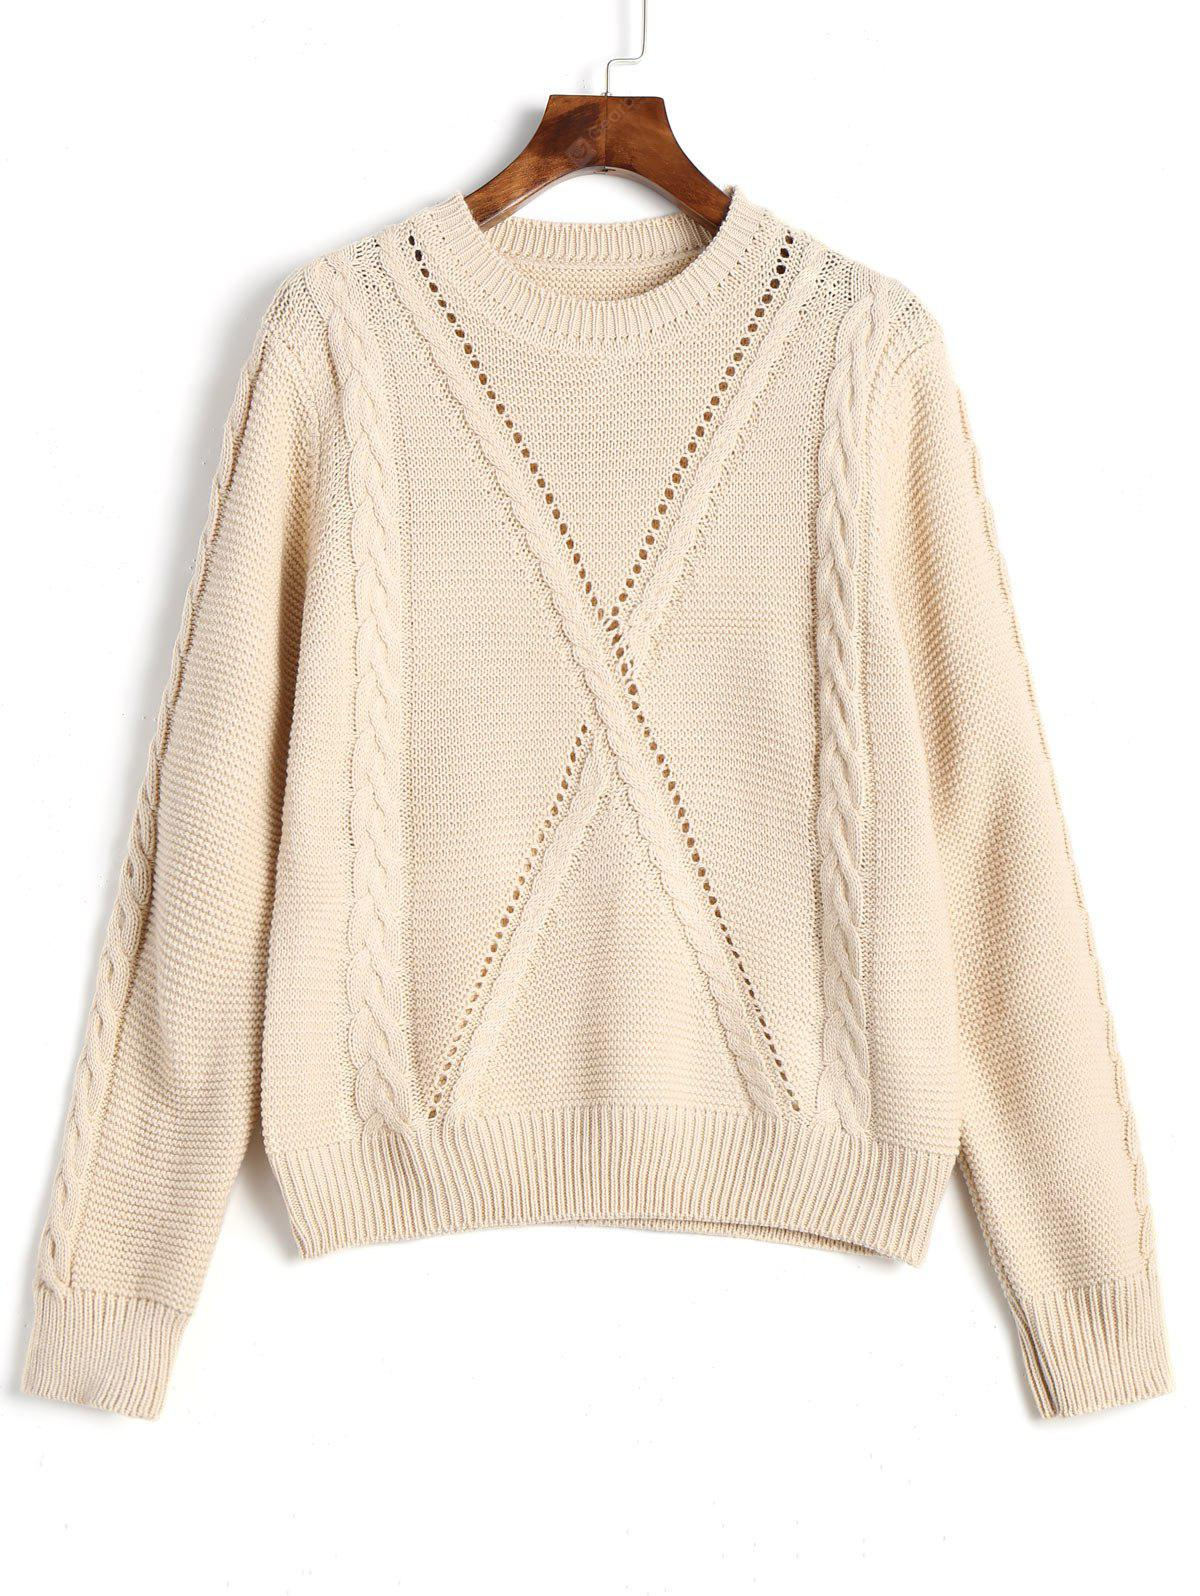 Crew Neck Cable Knitted Pullover Sweater